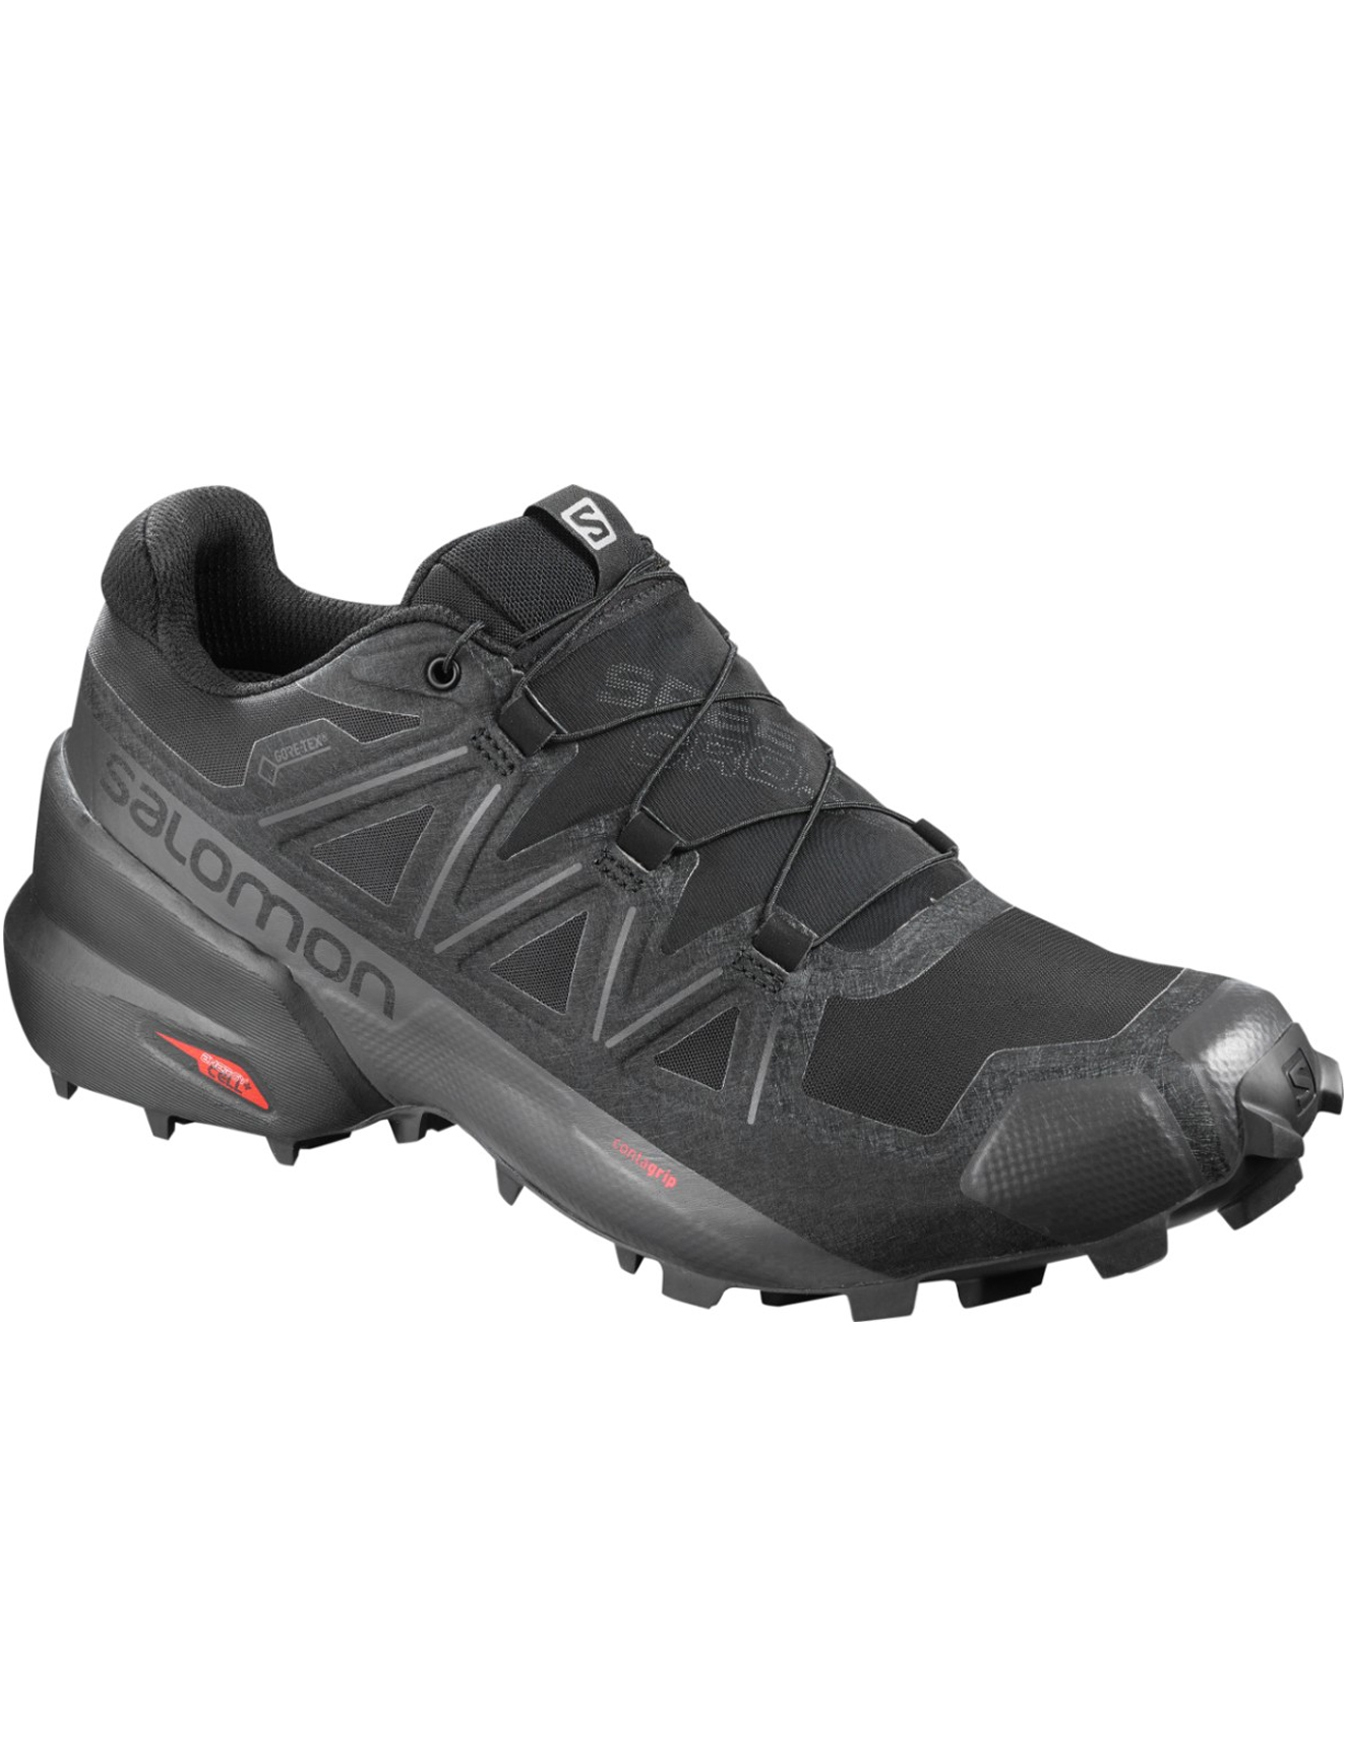 Speedcross 5 Gtx Black/Bk/Phantom